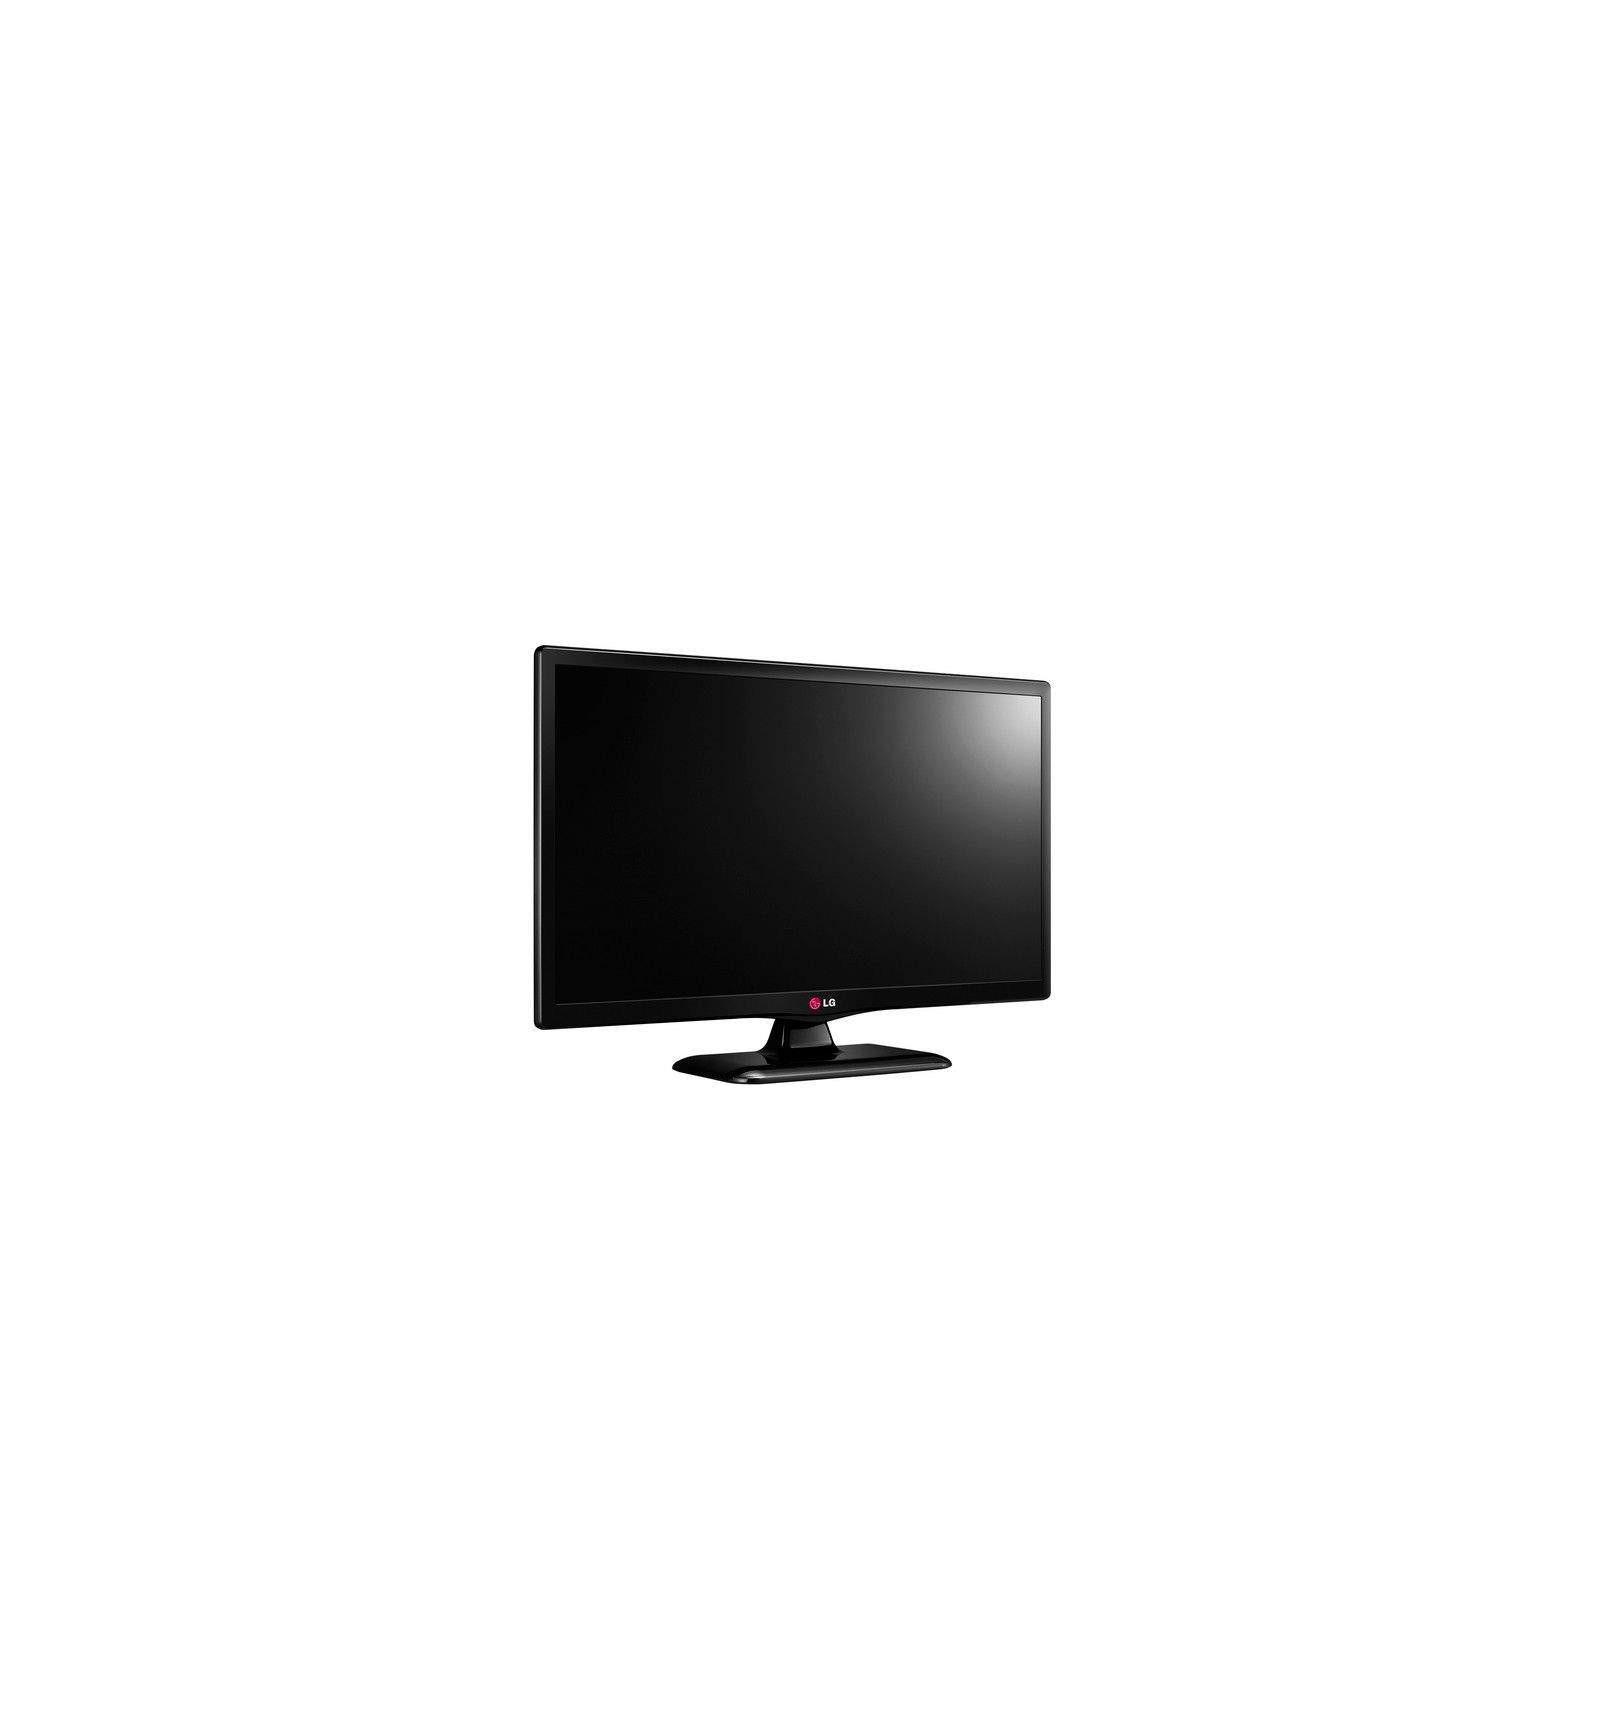 Televisor 32 Pulgadas Full Hd Innovador 22mt44dp Pz Televisor Monitor Full Hd Led Lg Of 34  Brillante Televisor 32 Pulgadas Full Hd